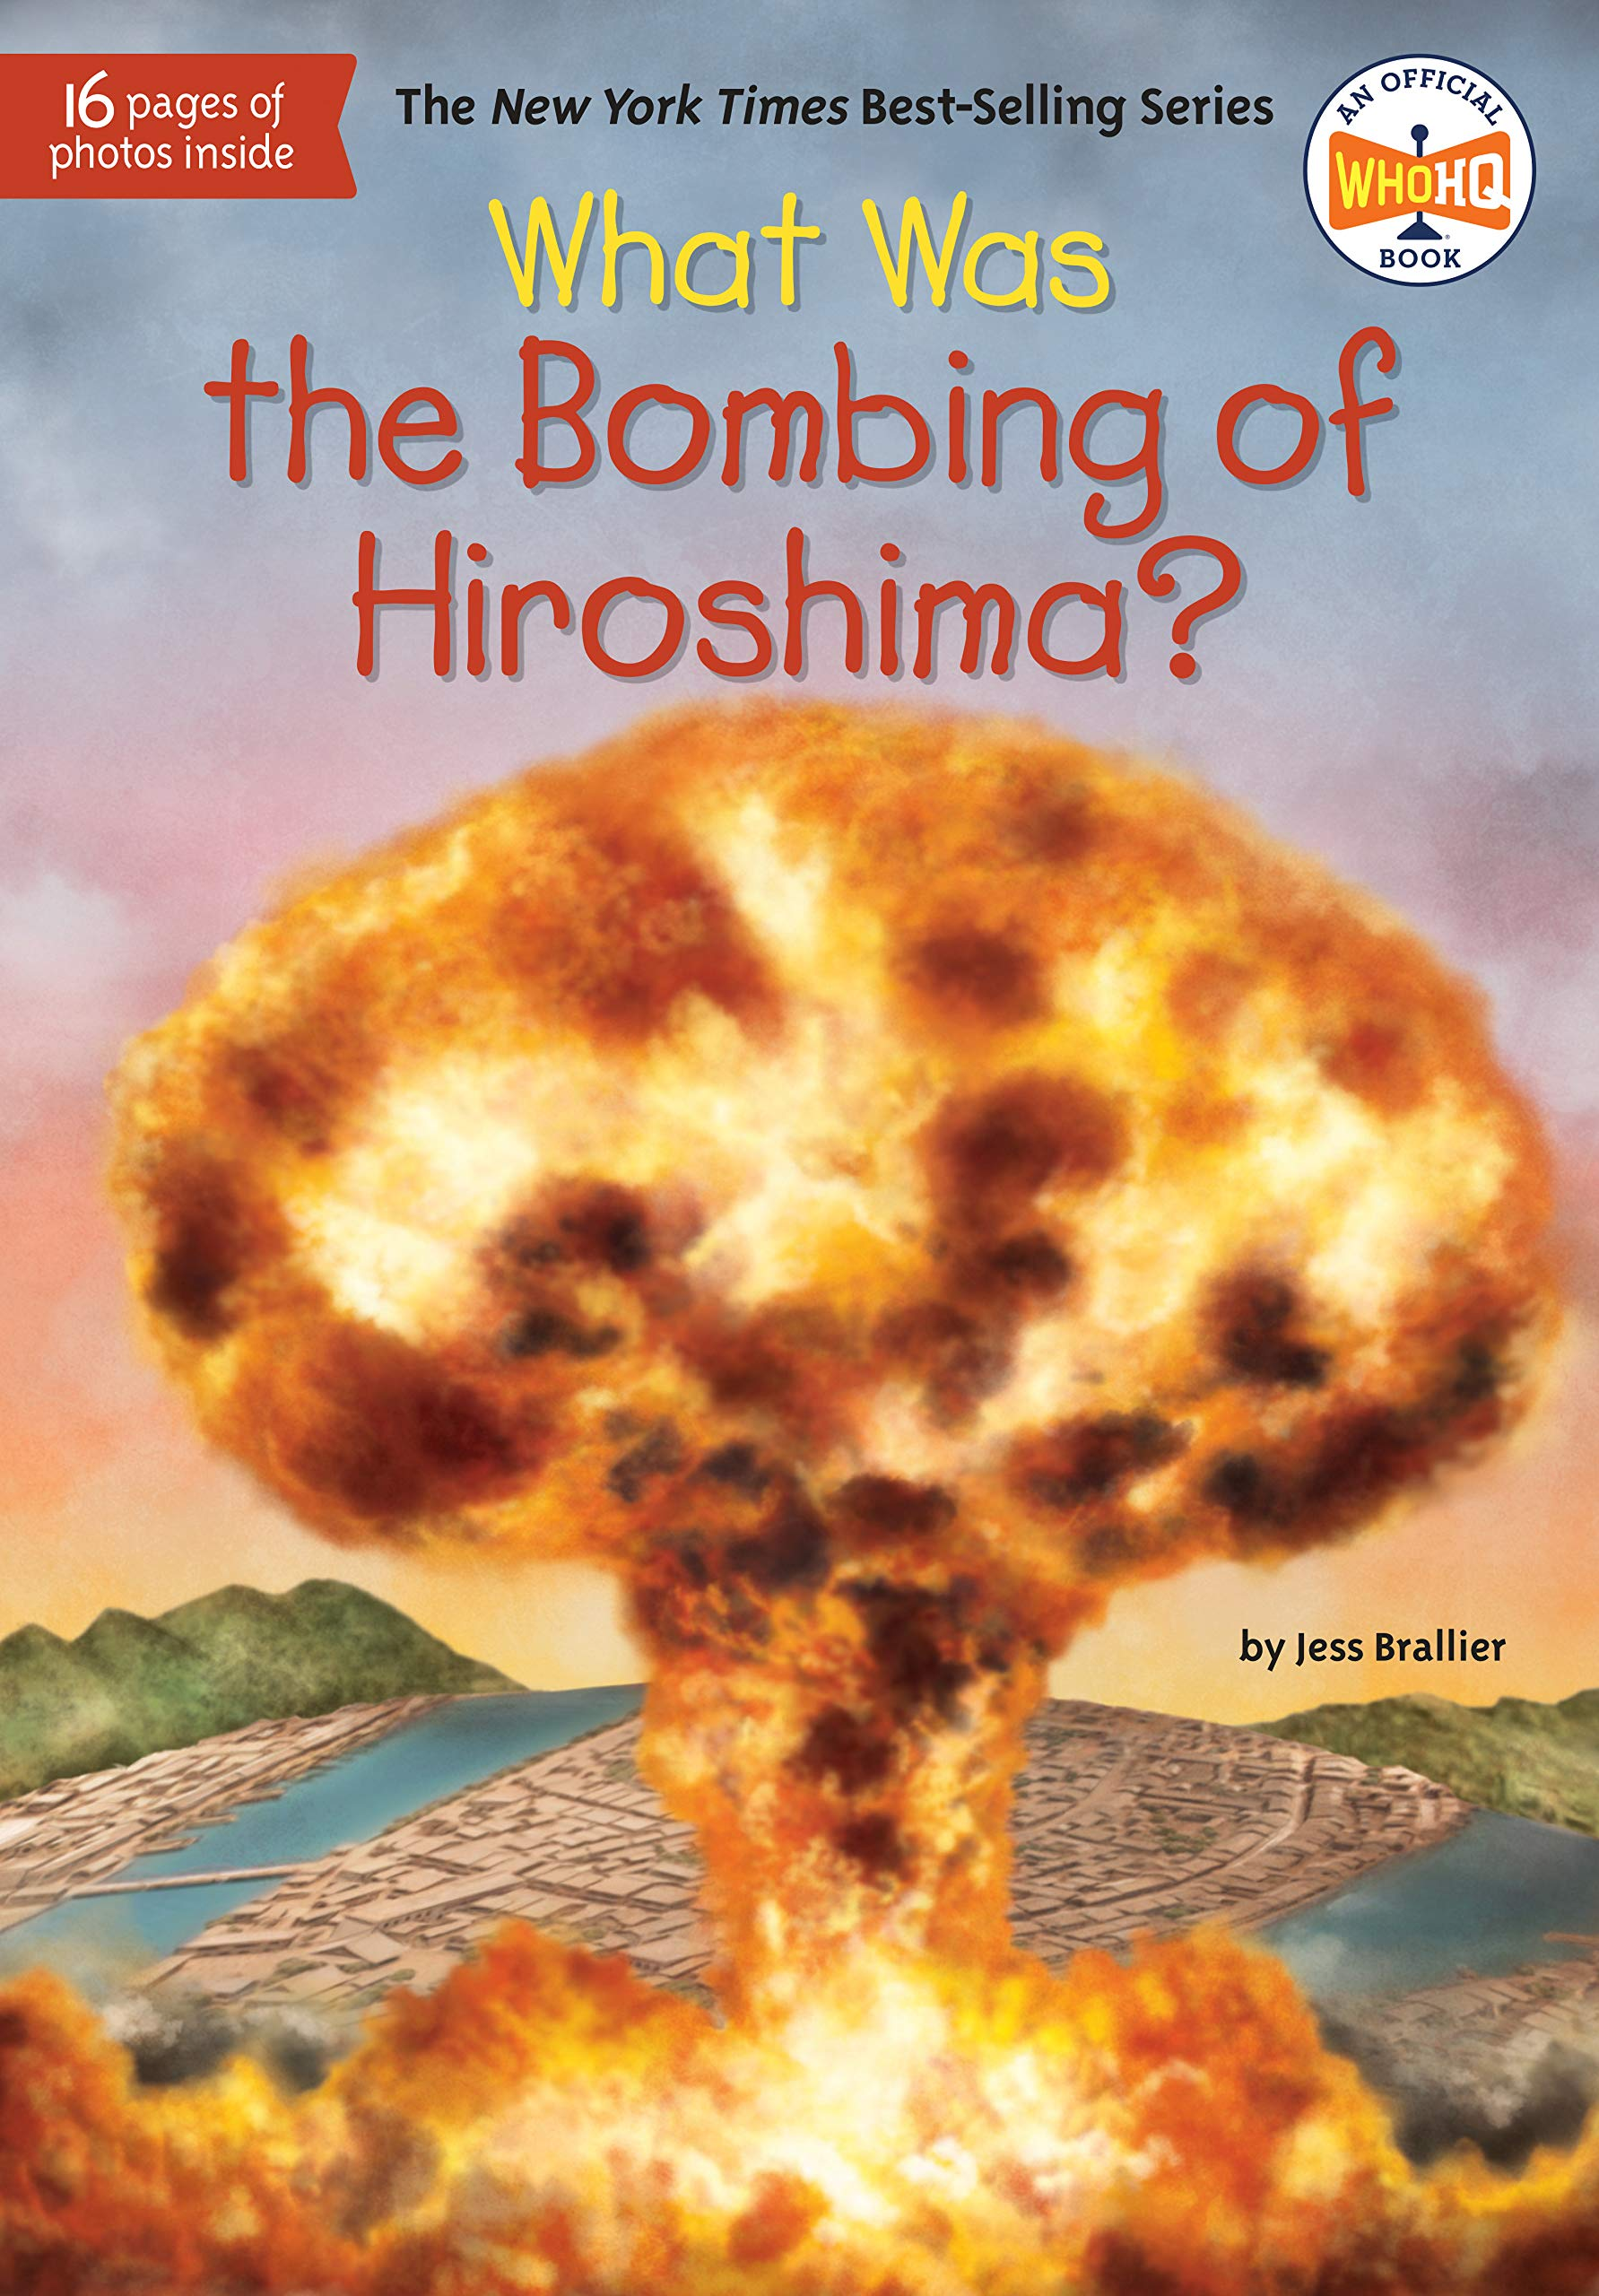 New York Bombing 2020 What Was the Bombing of Hiroshima?: Jess M Brallier, Who HQ, Tim